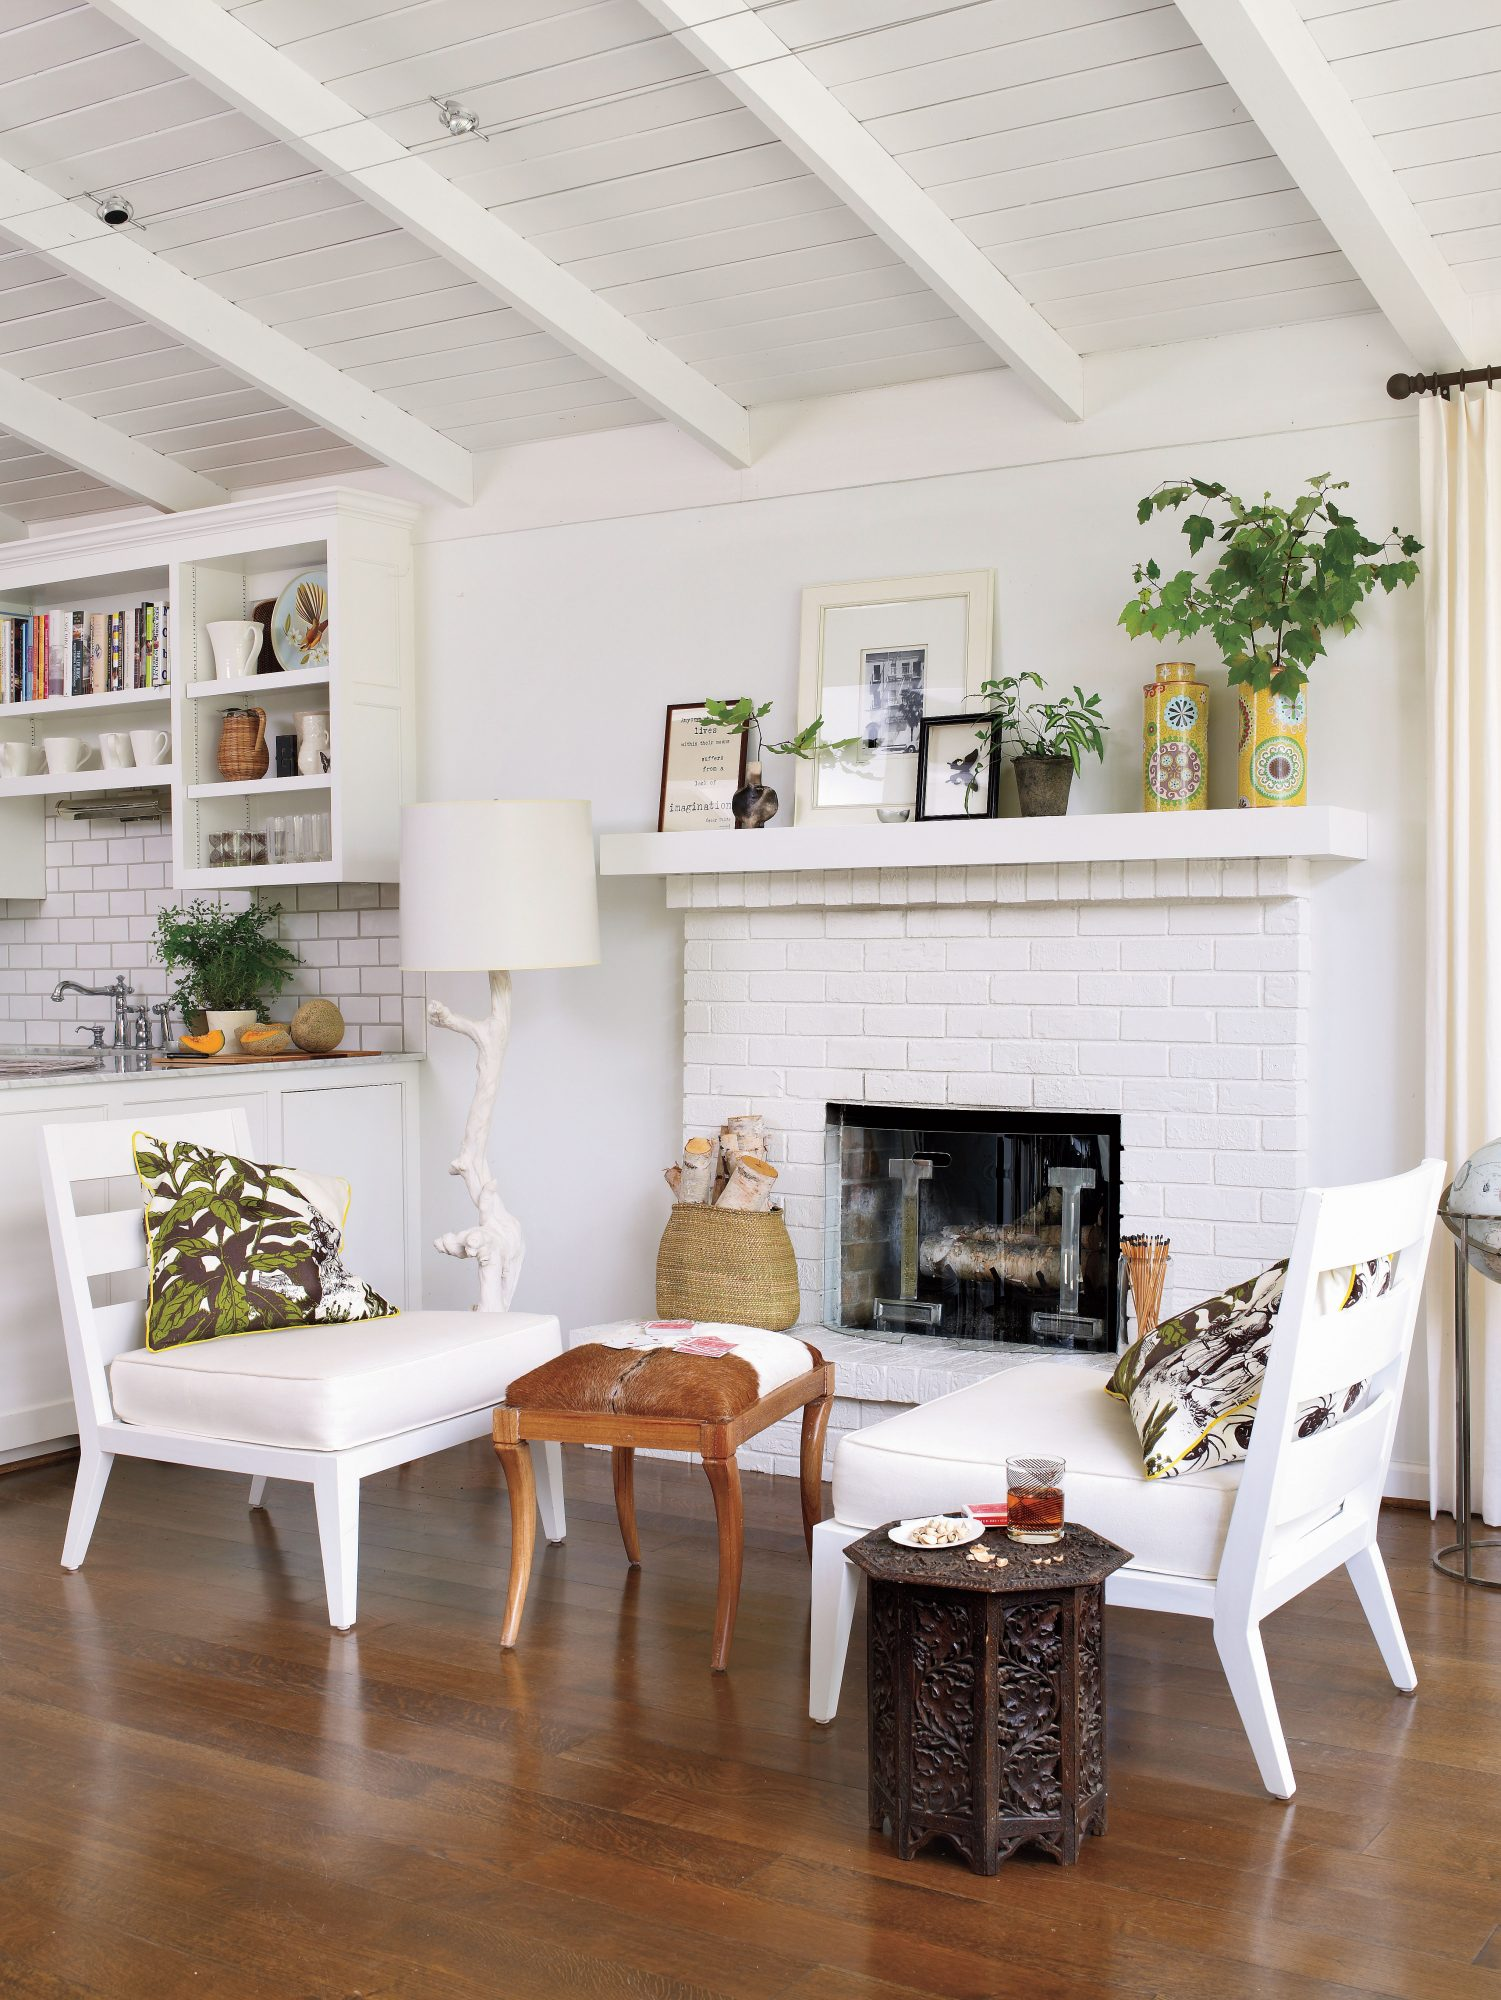 Home Makeovers - Before + After Pictures - Southern Living